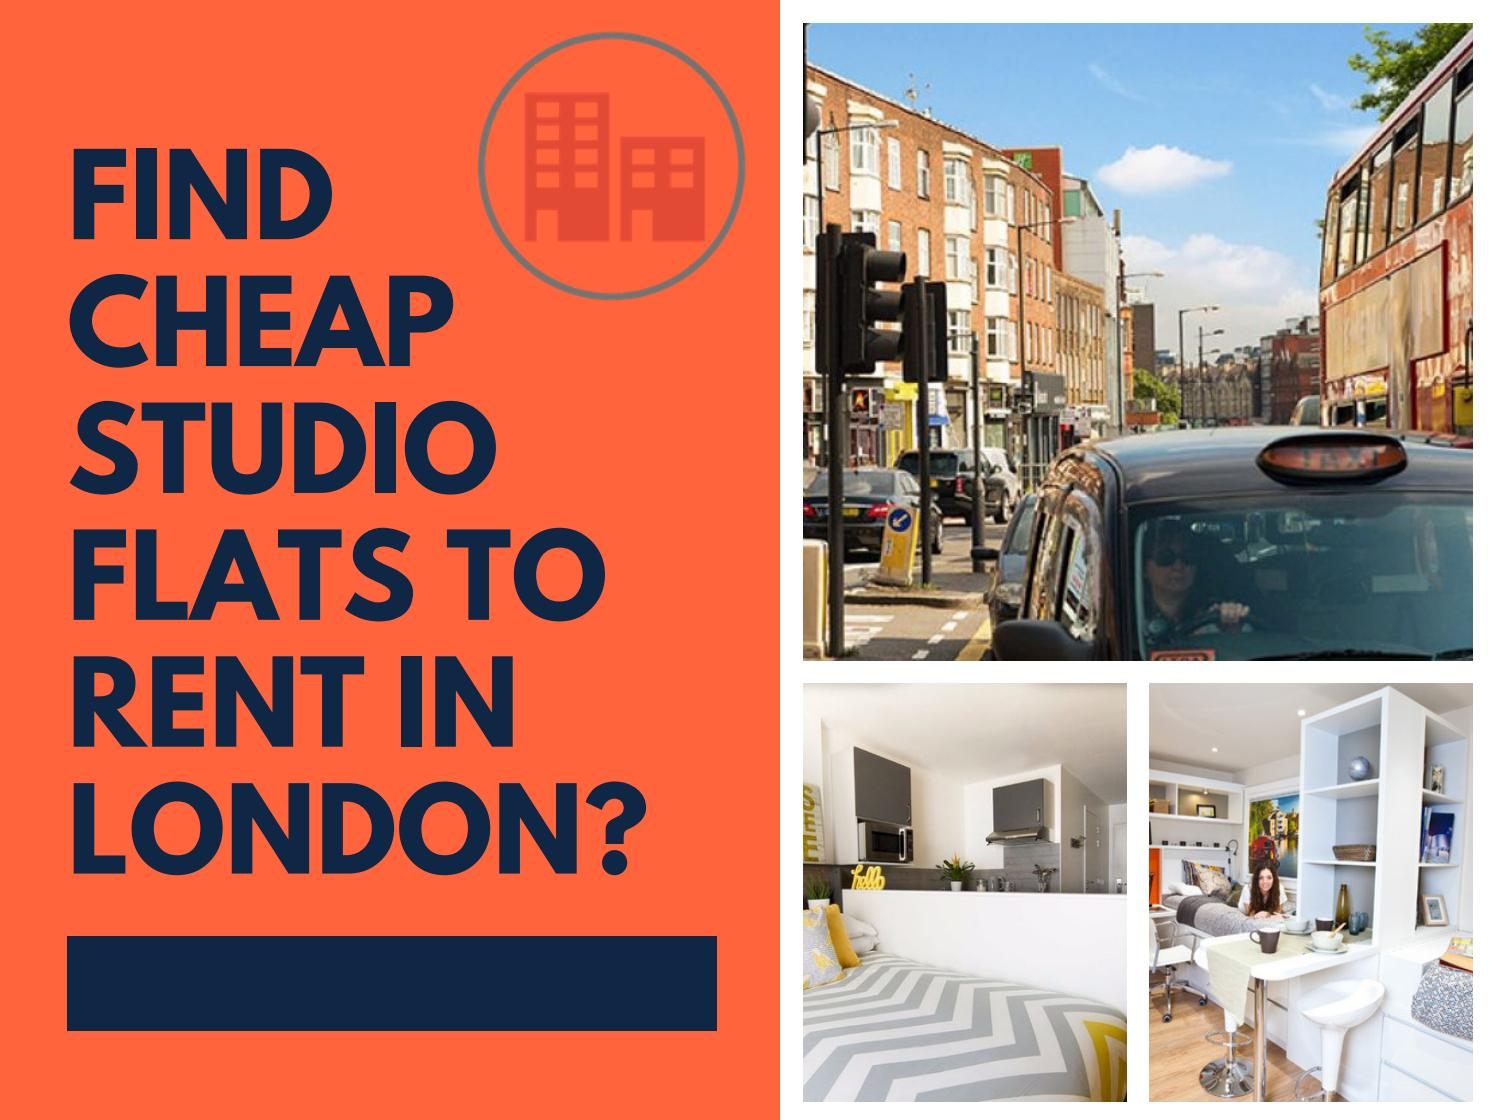 Find cheap studio flats to rent in london by Finchley Road Studios - issuu